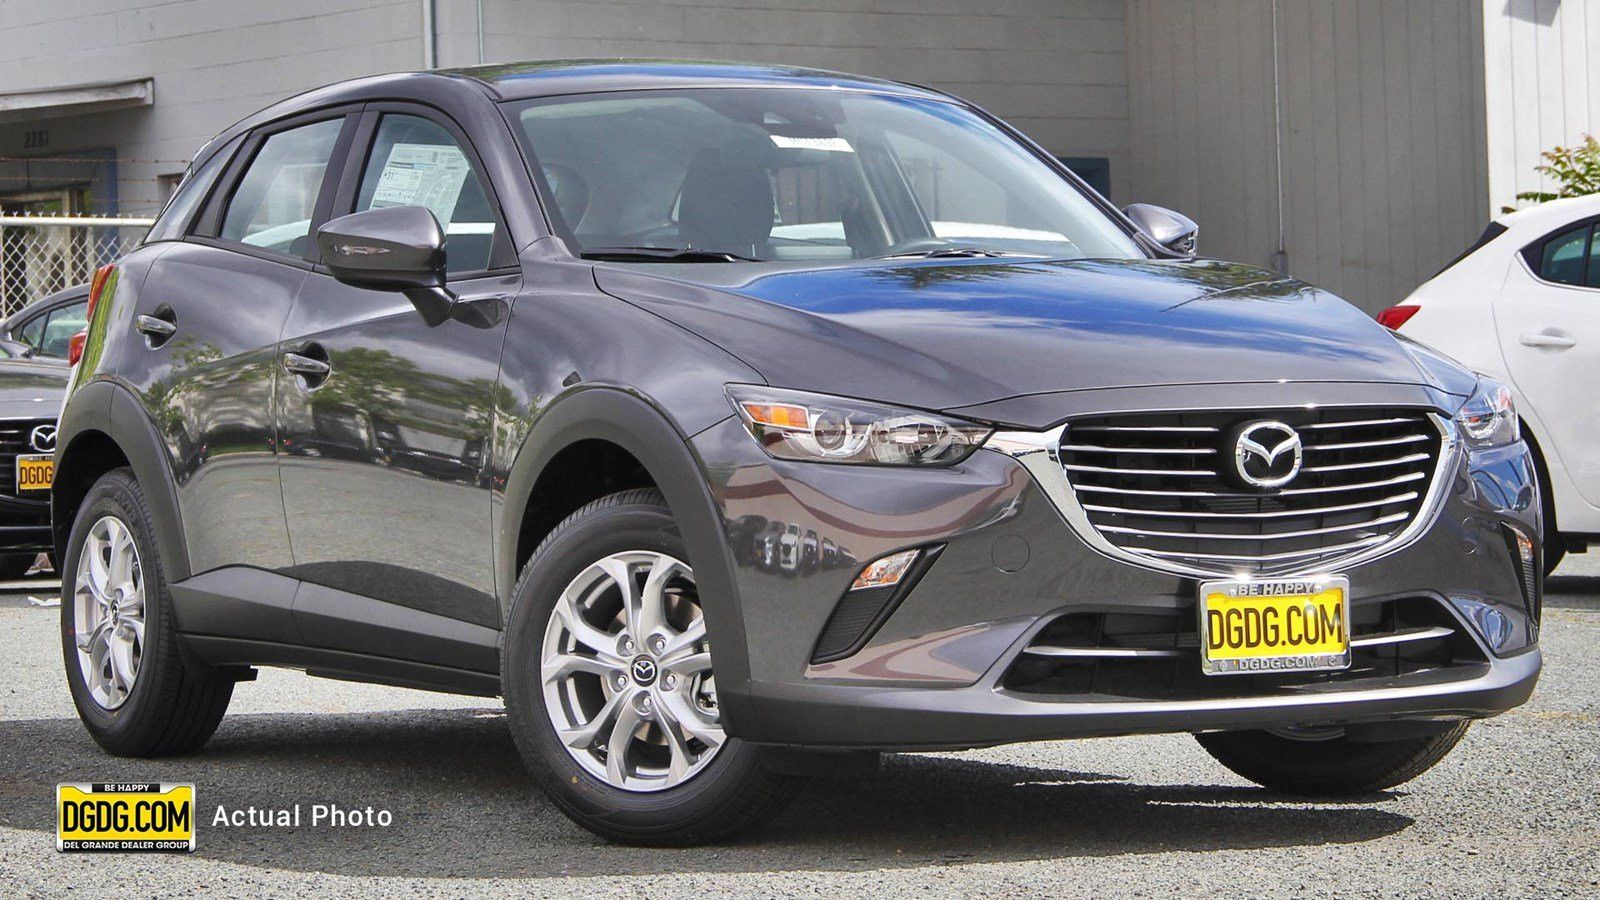 Mazda Cx3 2018 Check More At Http Www Autocarsreview Club 2018 12 31 Mazda Cx3 2018 Mazda Cx3 Mazda Mazda Suv